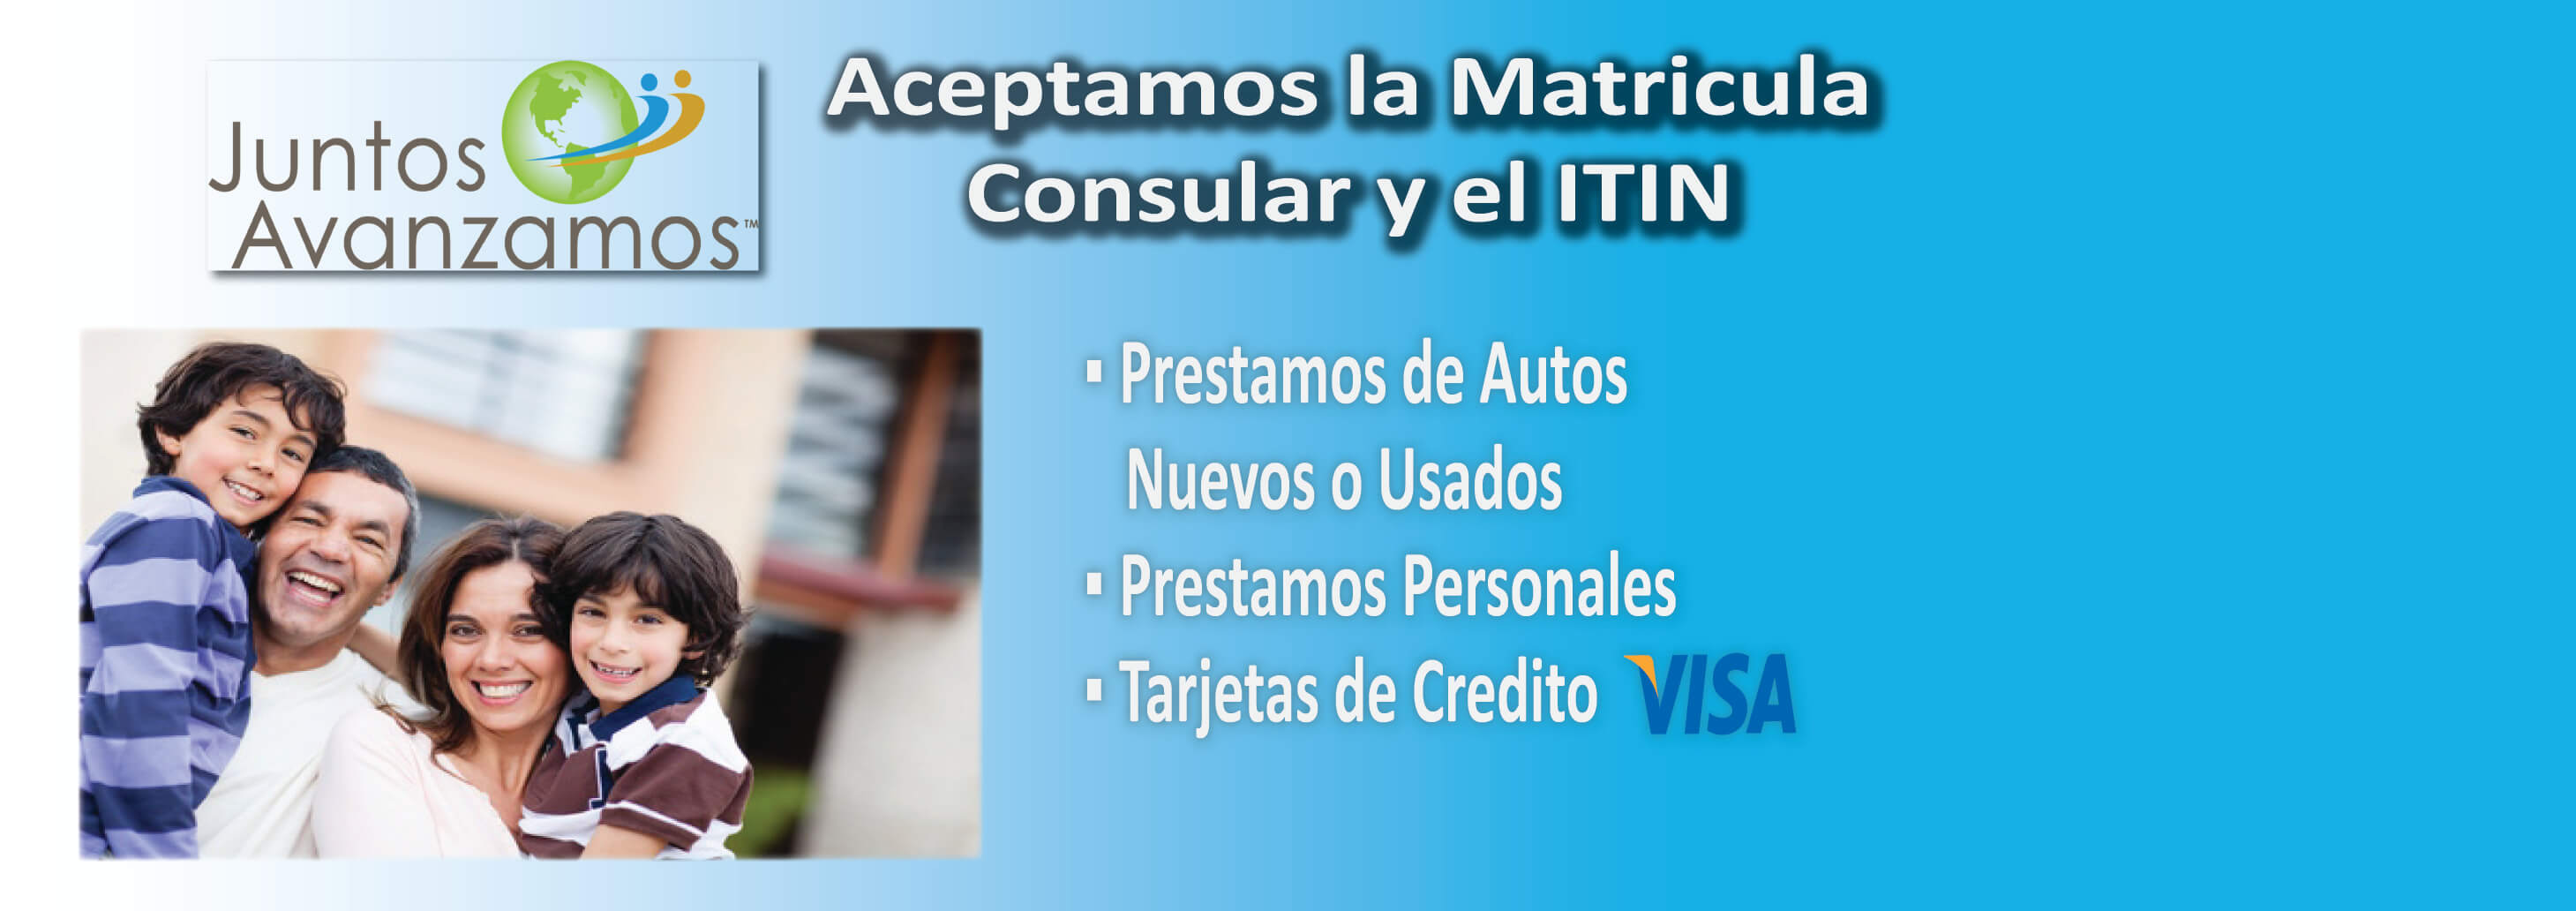 Spanish Loans- New/Used Auto Loans, Persoanl Loans, Credit Card Loans